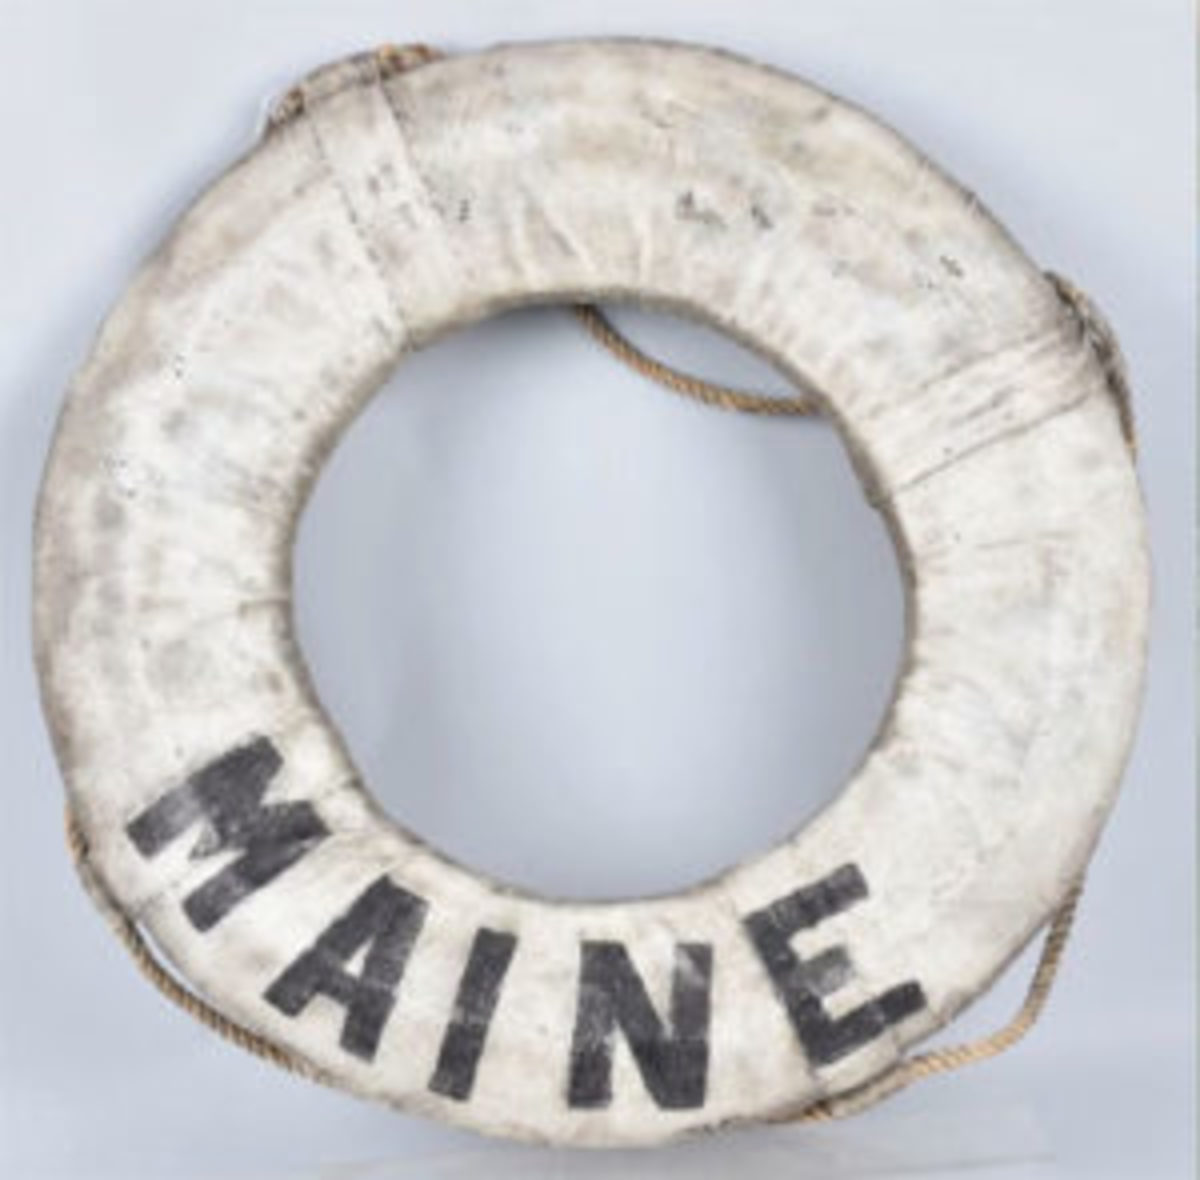 USS Maine preserver ring